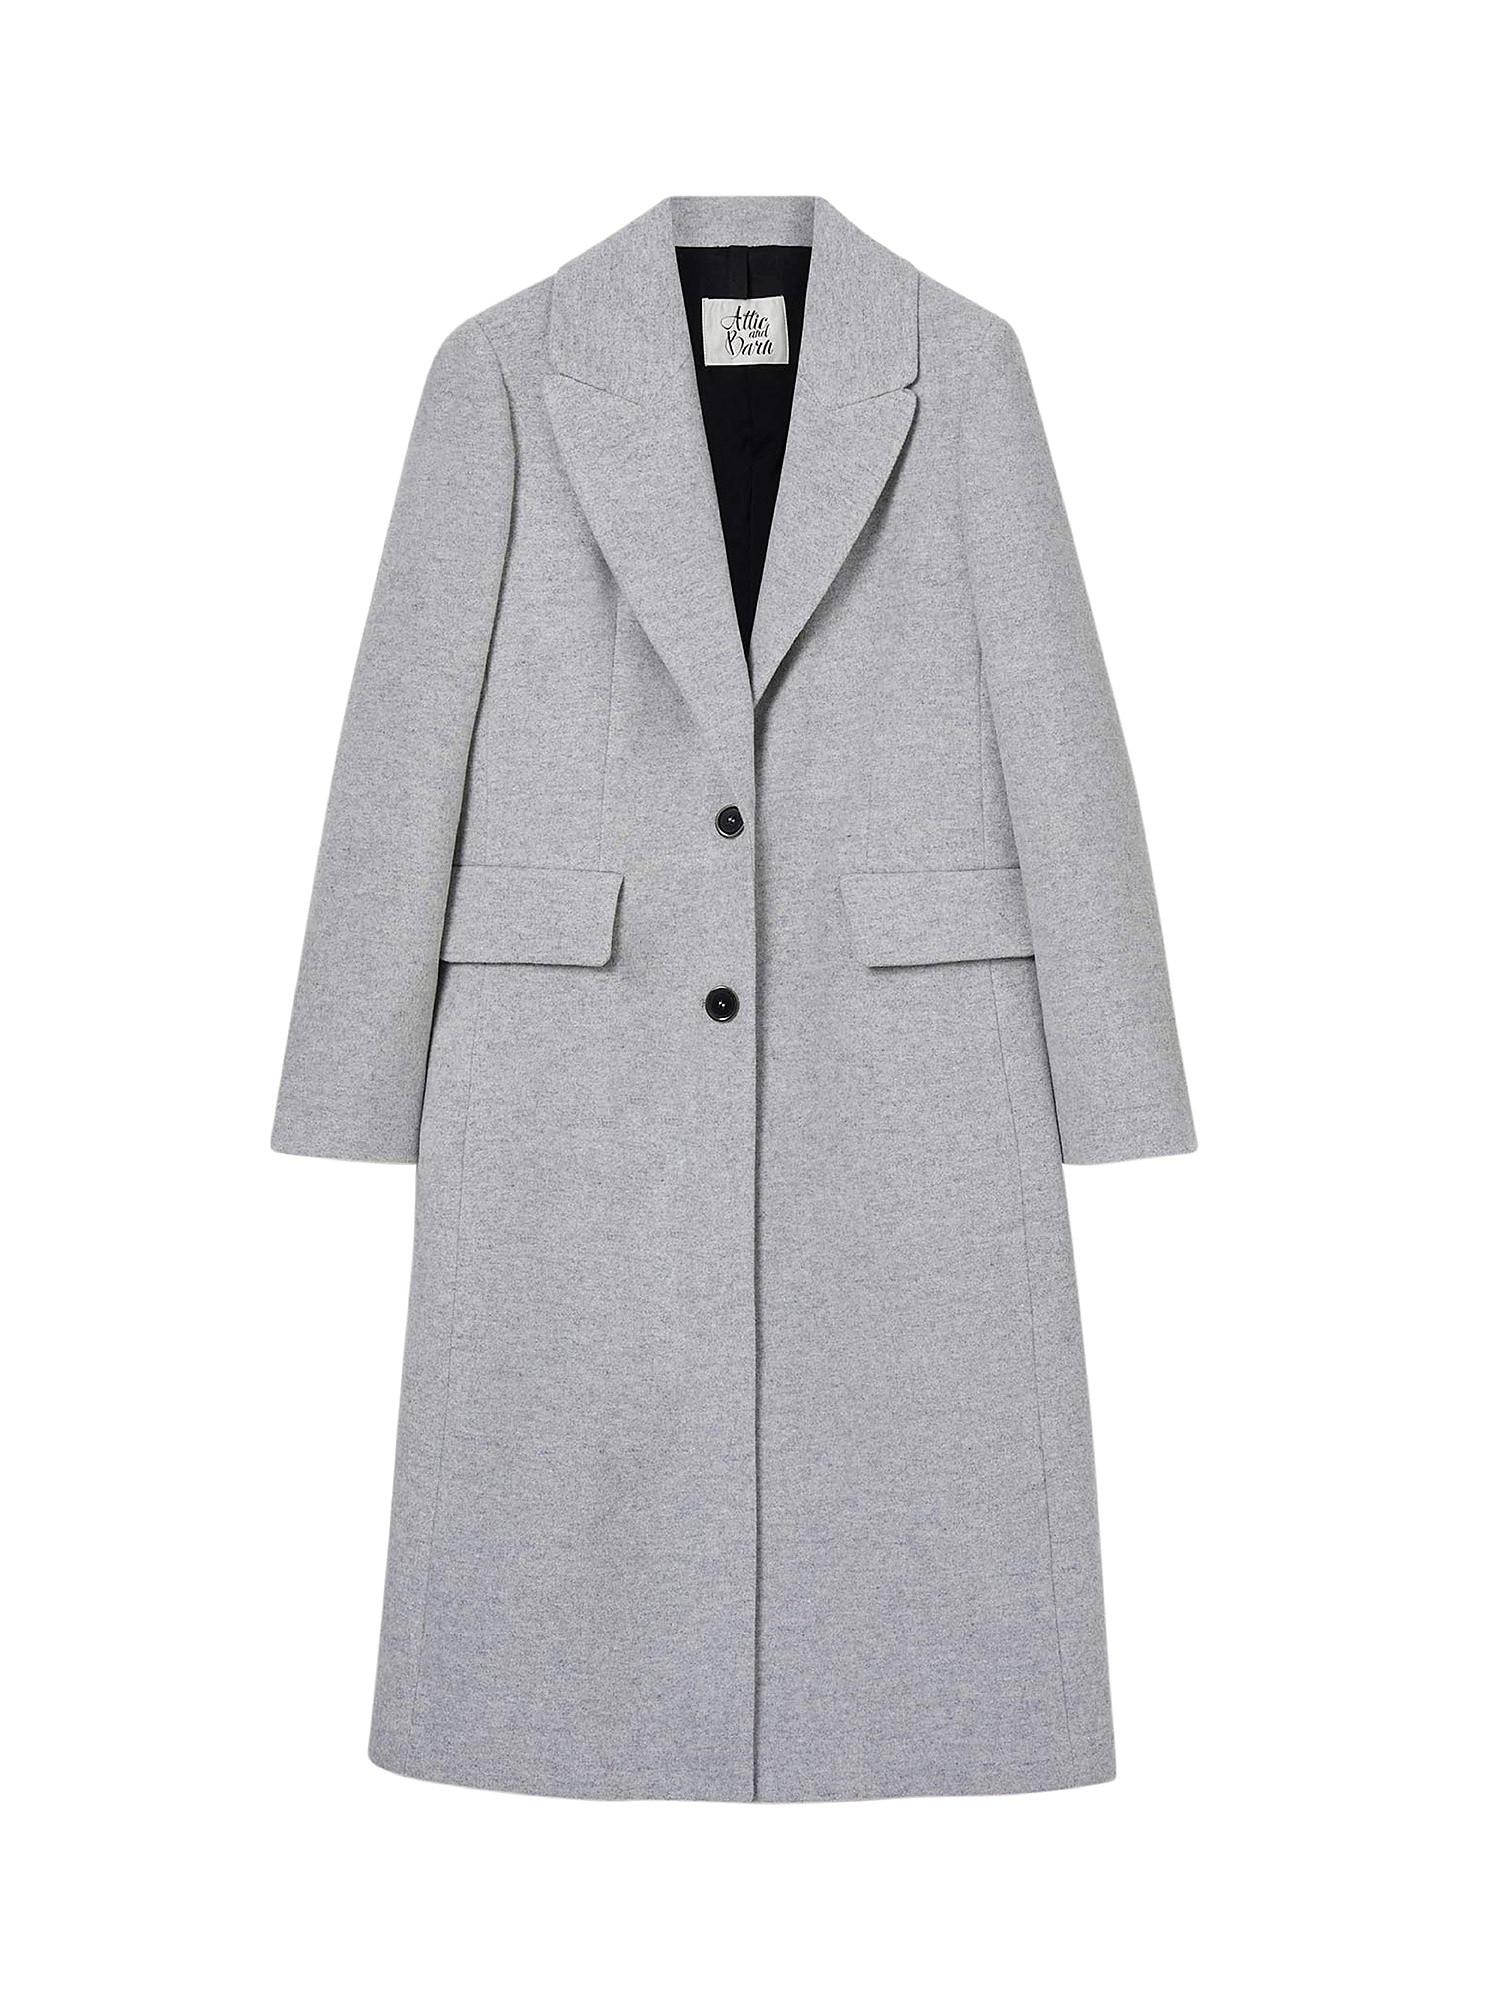 Cappotto, Grigio, large image number 0